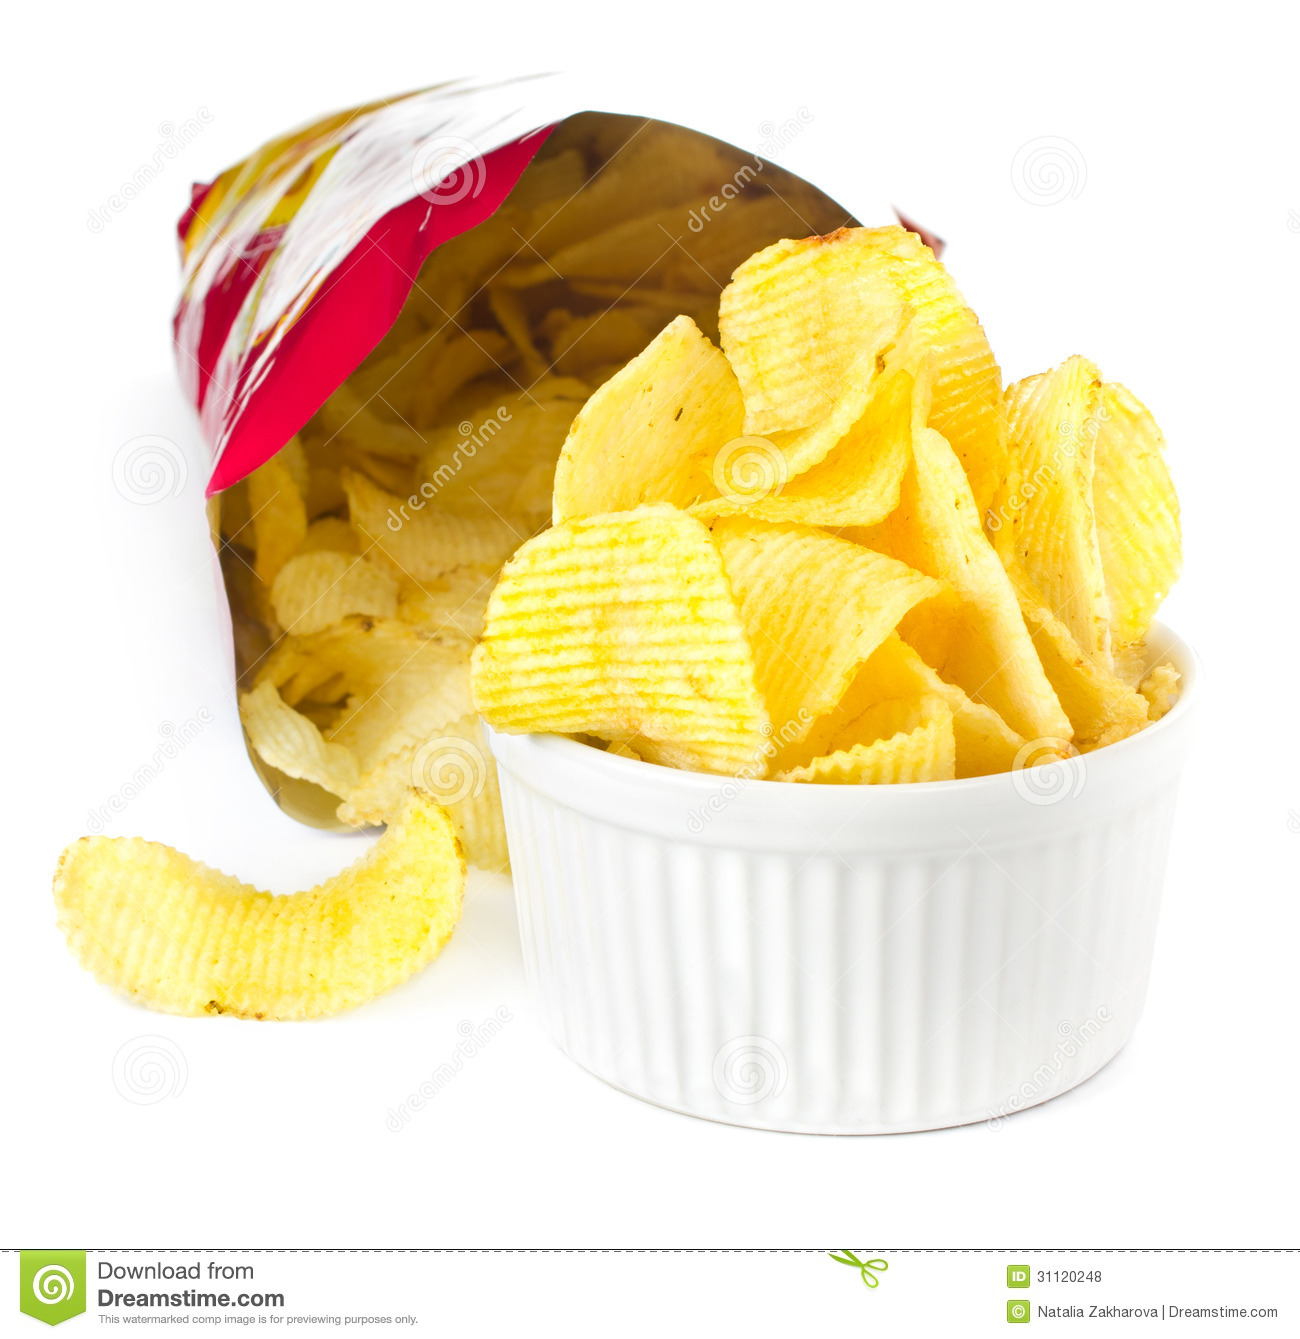 15612cdbd1 Open Bag With Potato Chips On White Background Stock Photo - Image ...